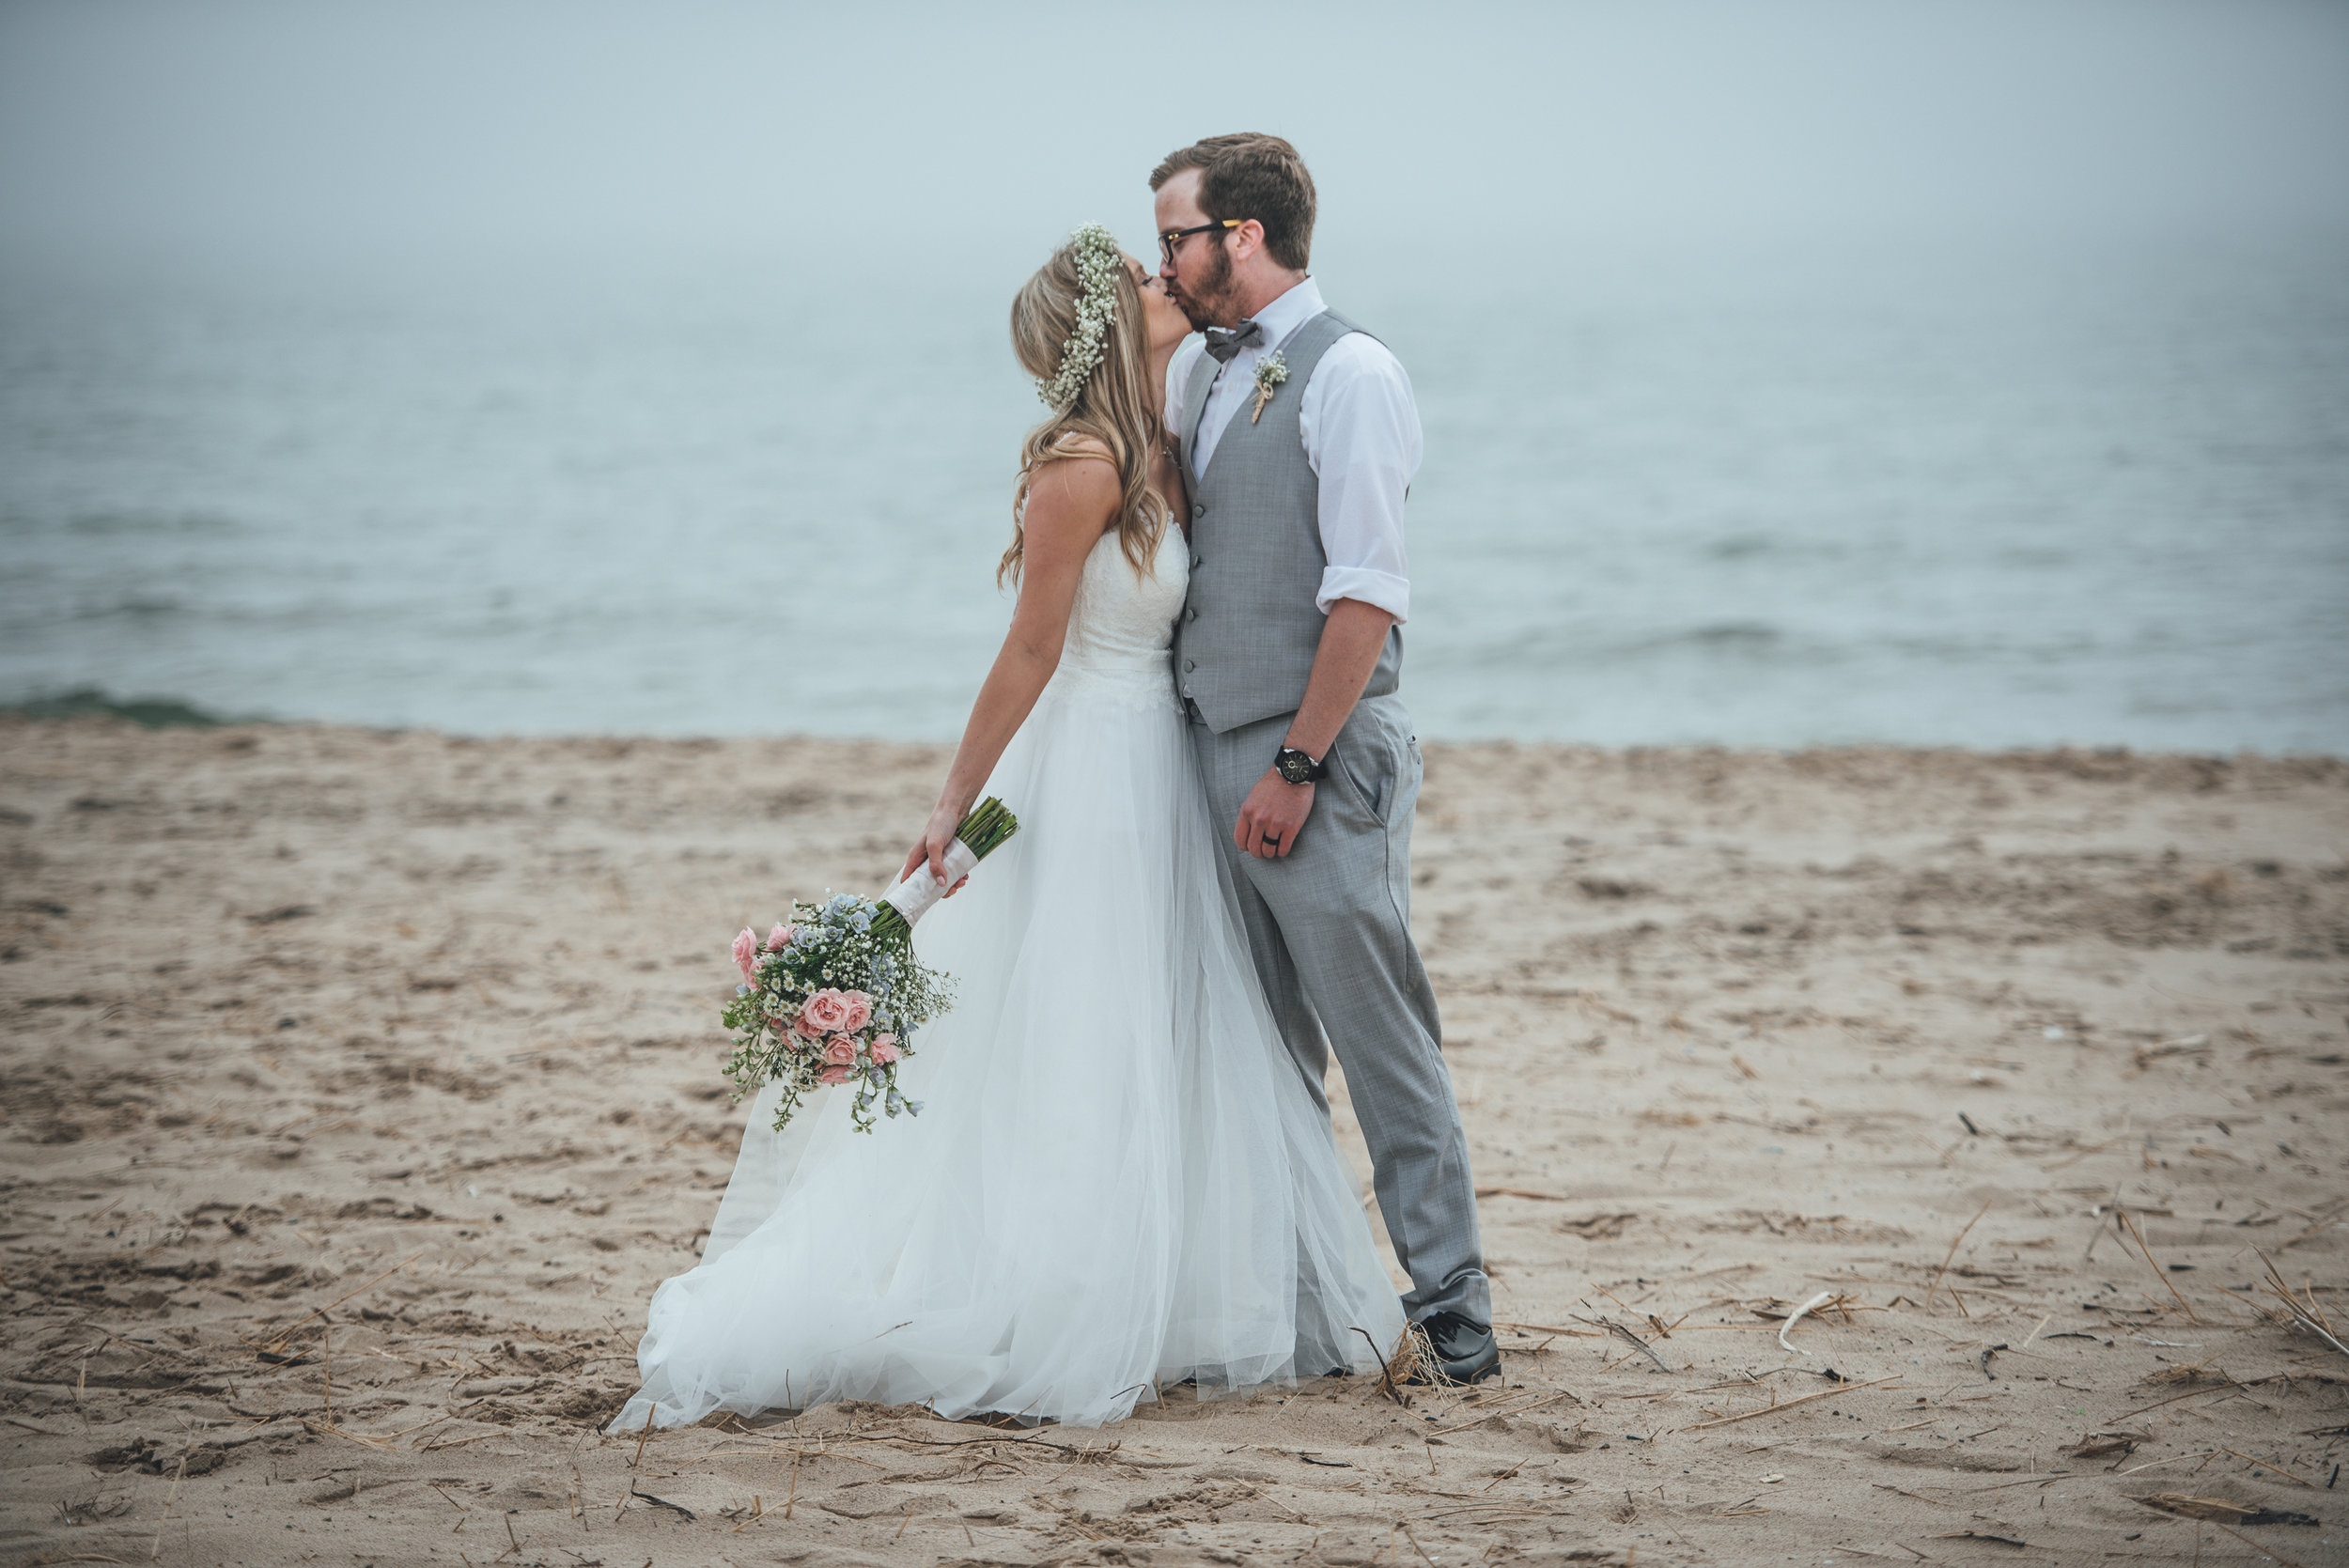 Ashley & Nate - Full Gallery